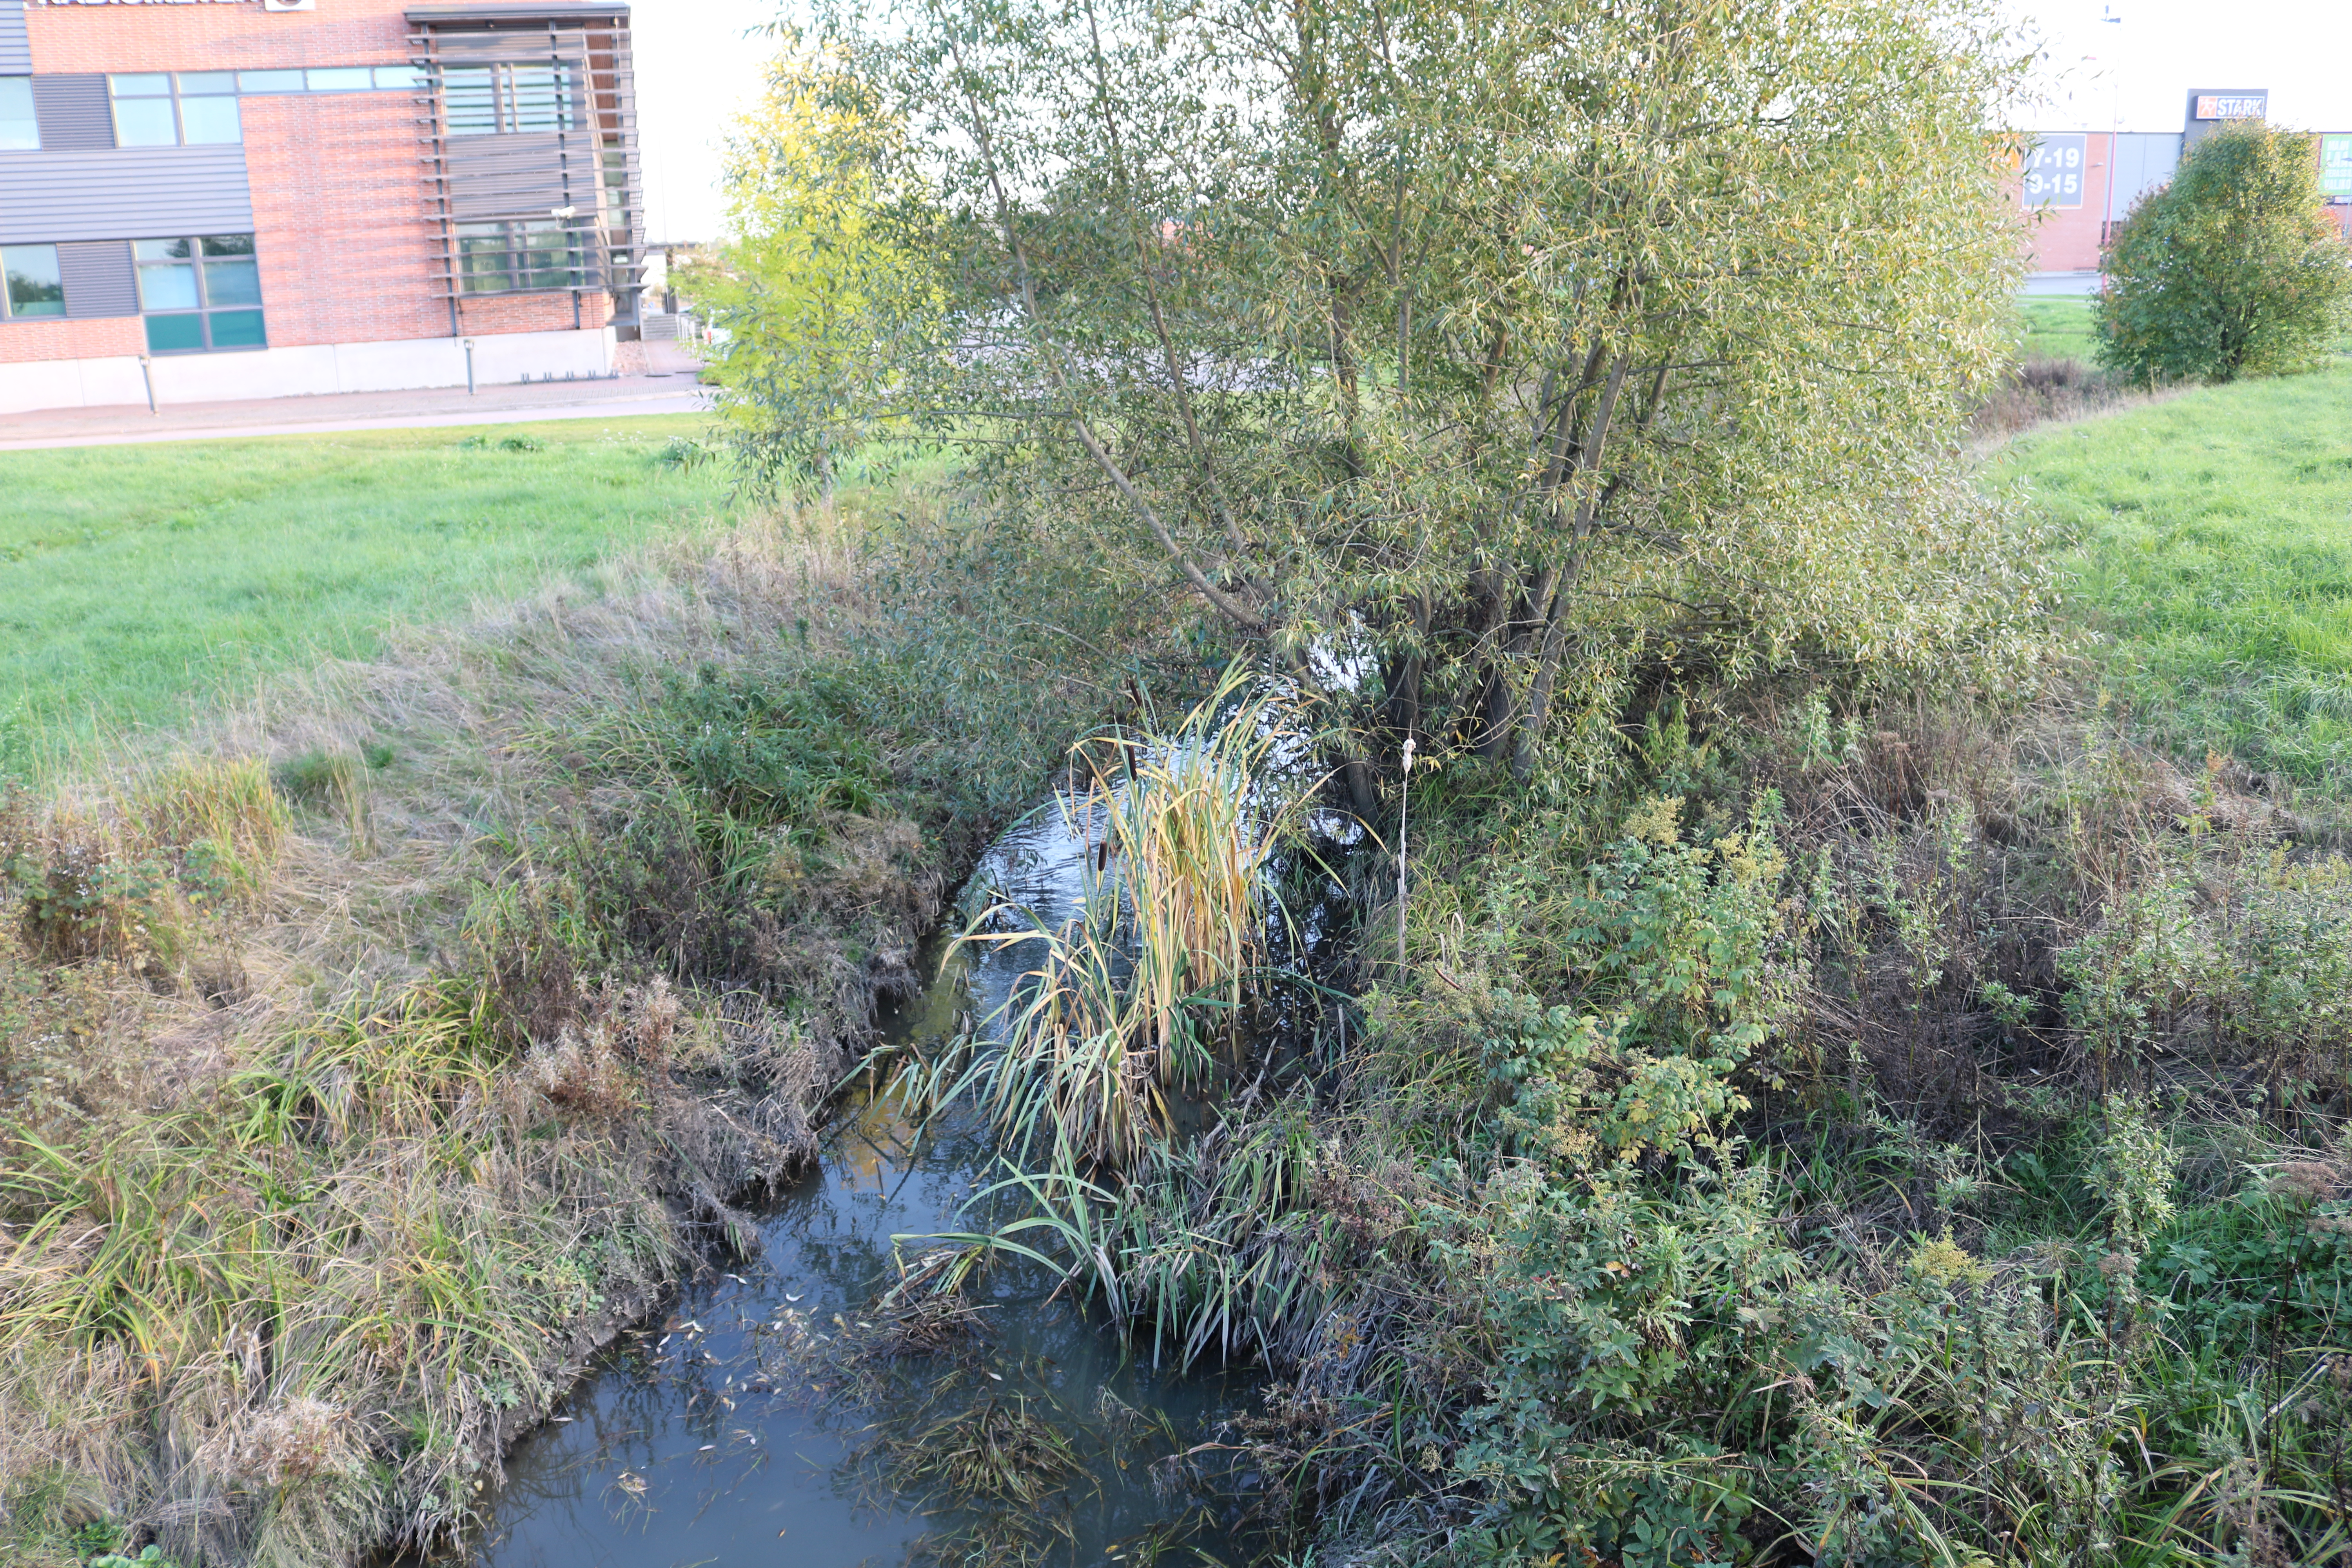 Biolaakso stormwater management site